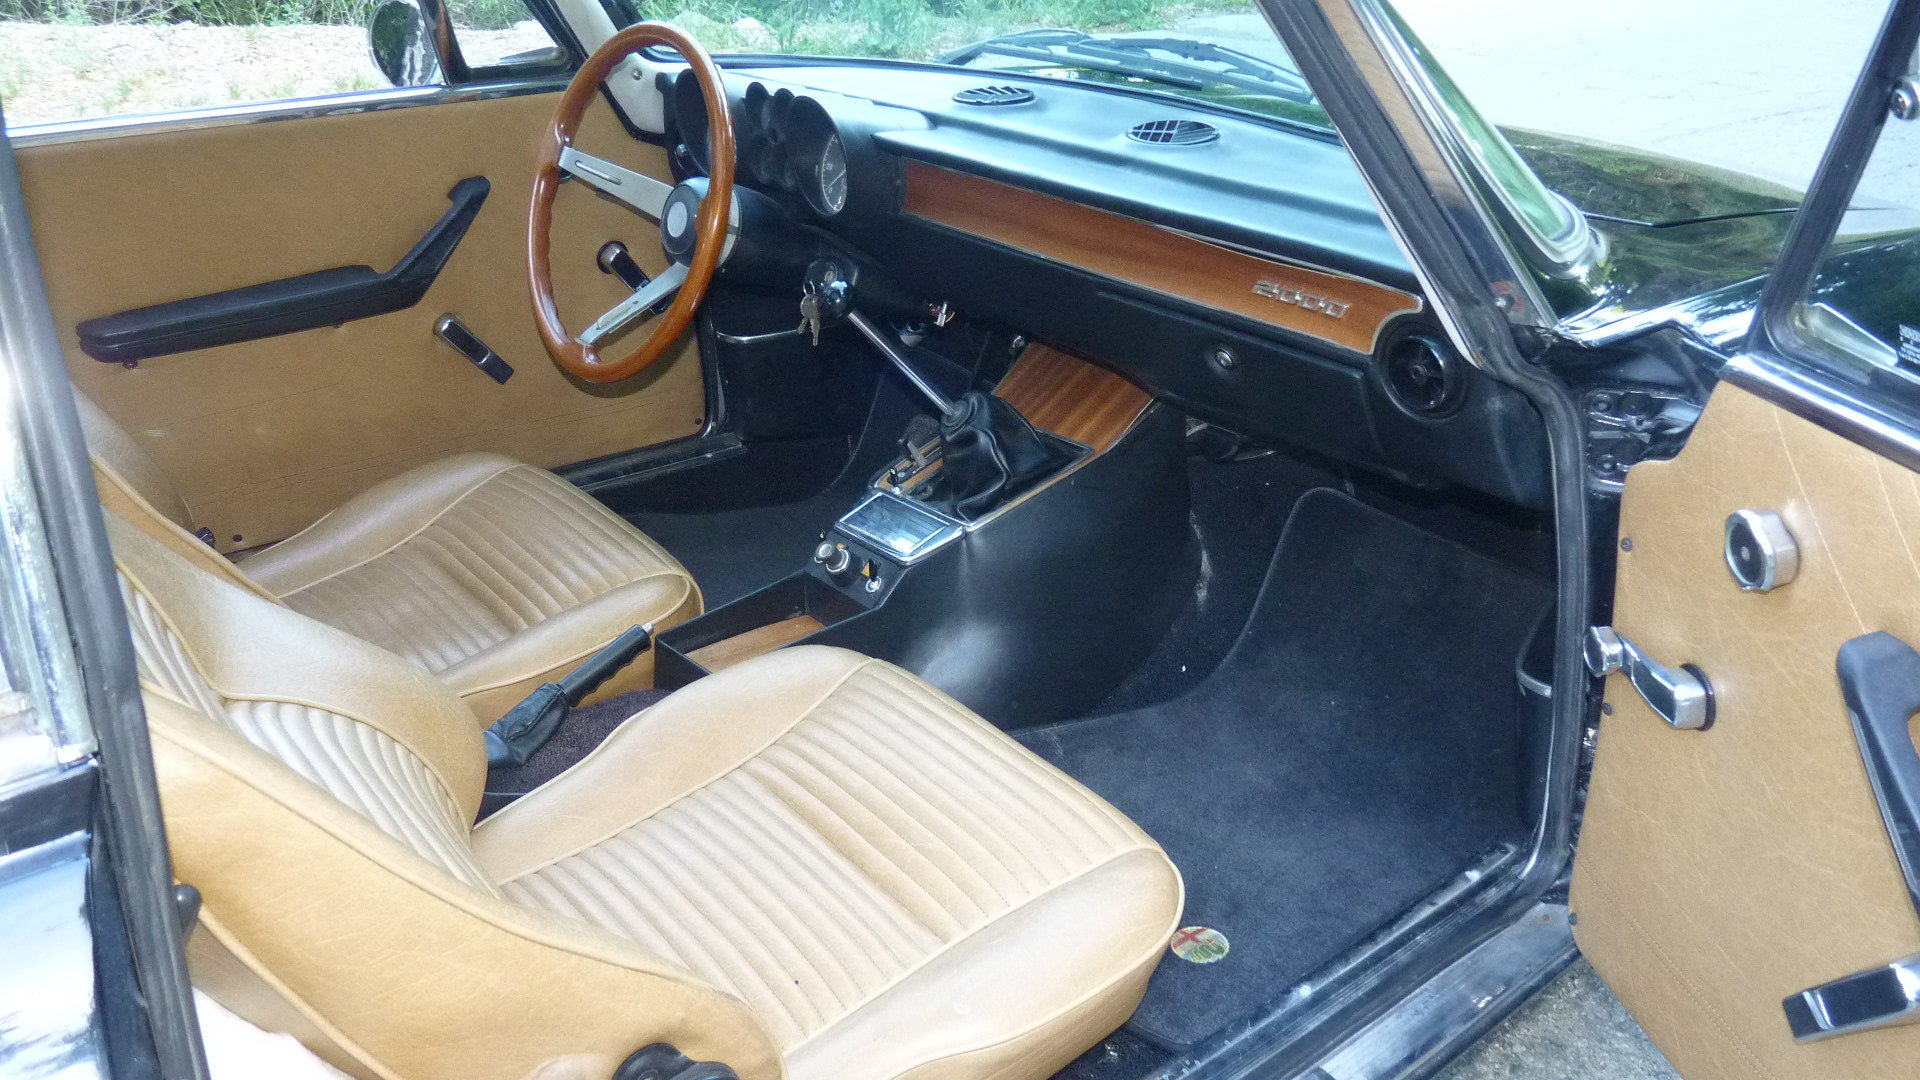 1974 Original owner southern California sunroof GTV For Sale (picture 4 of 6)